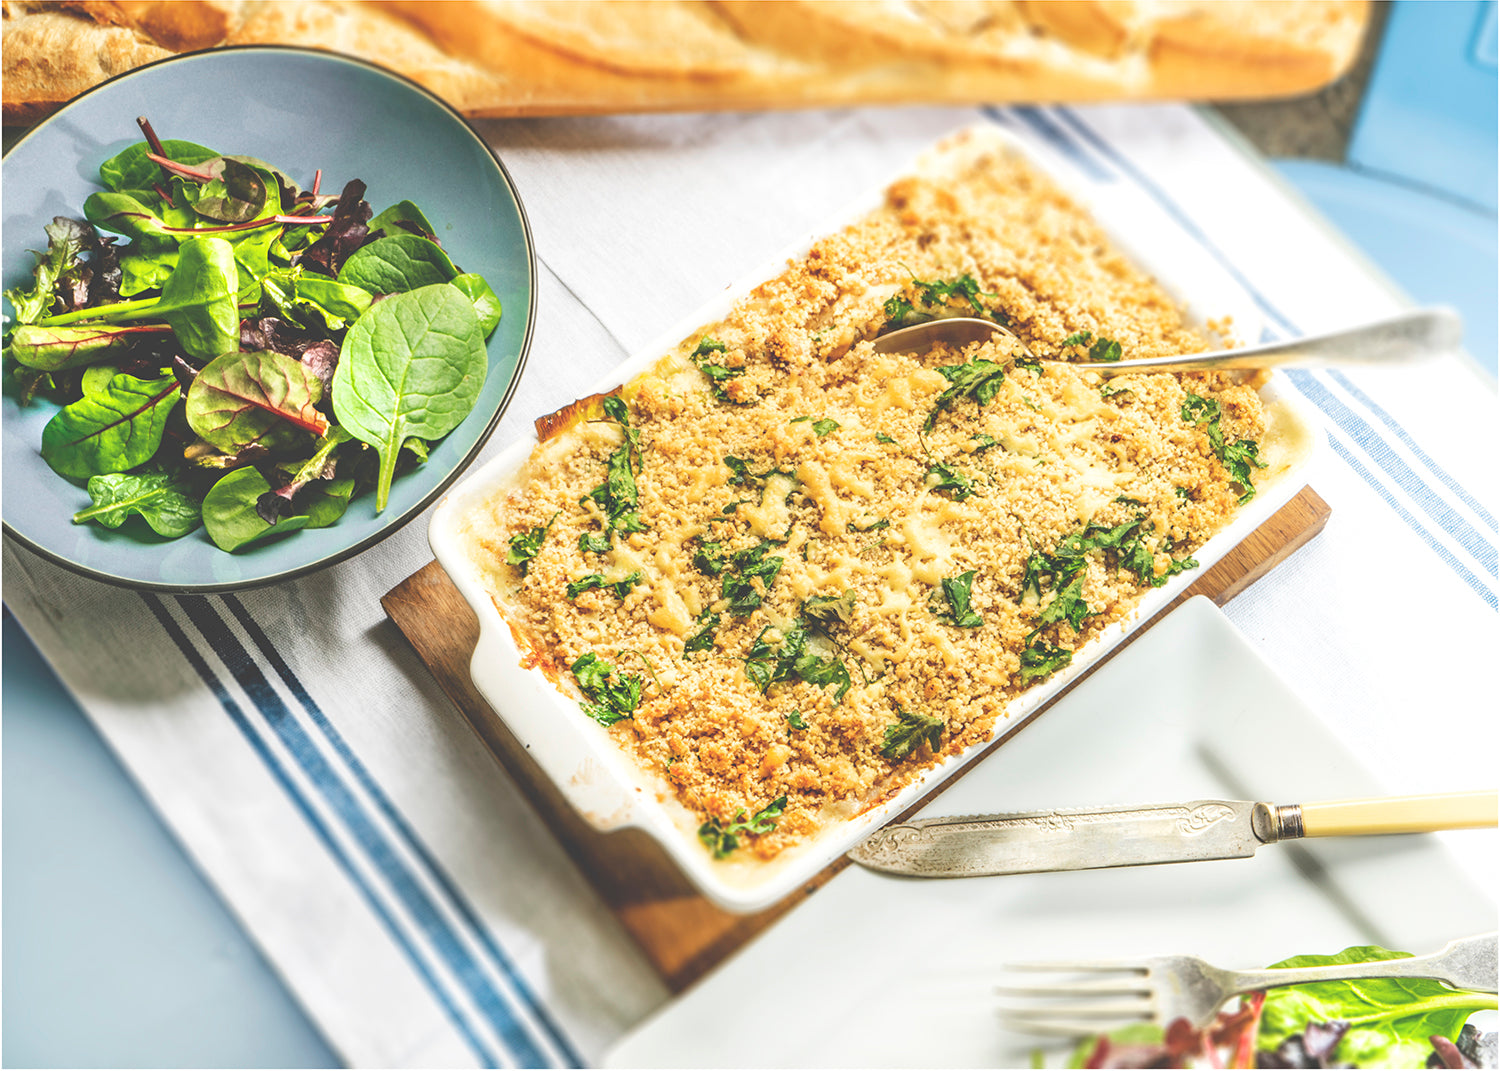 Cheddar, Cider, Cod and Leek Crumble